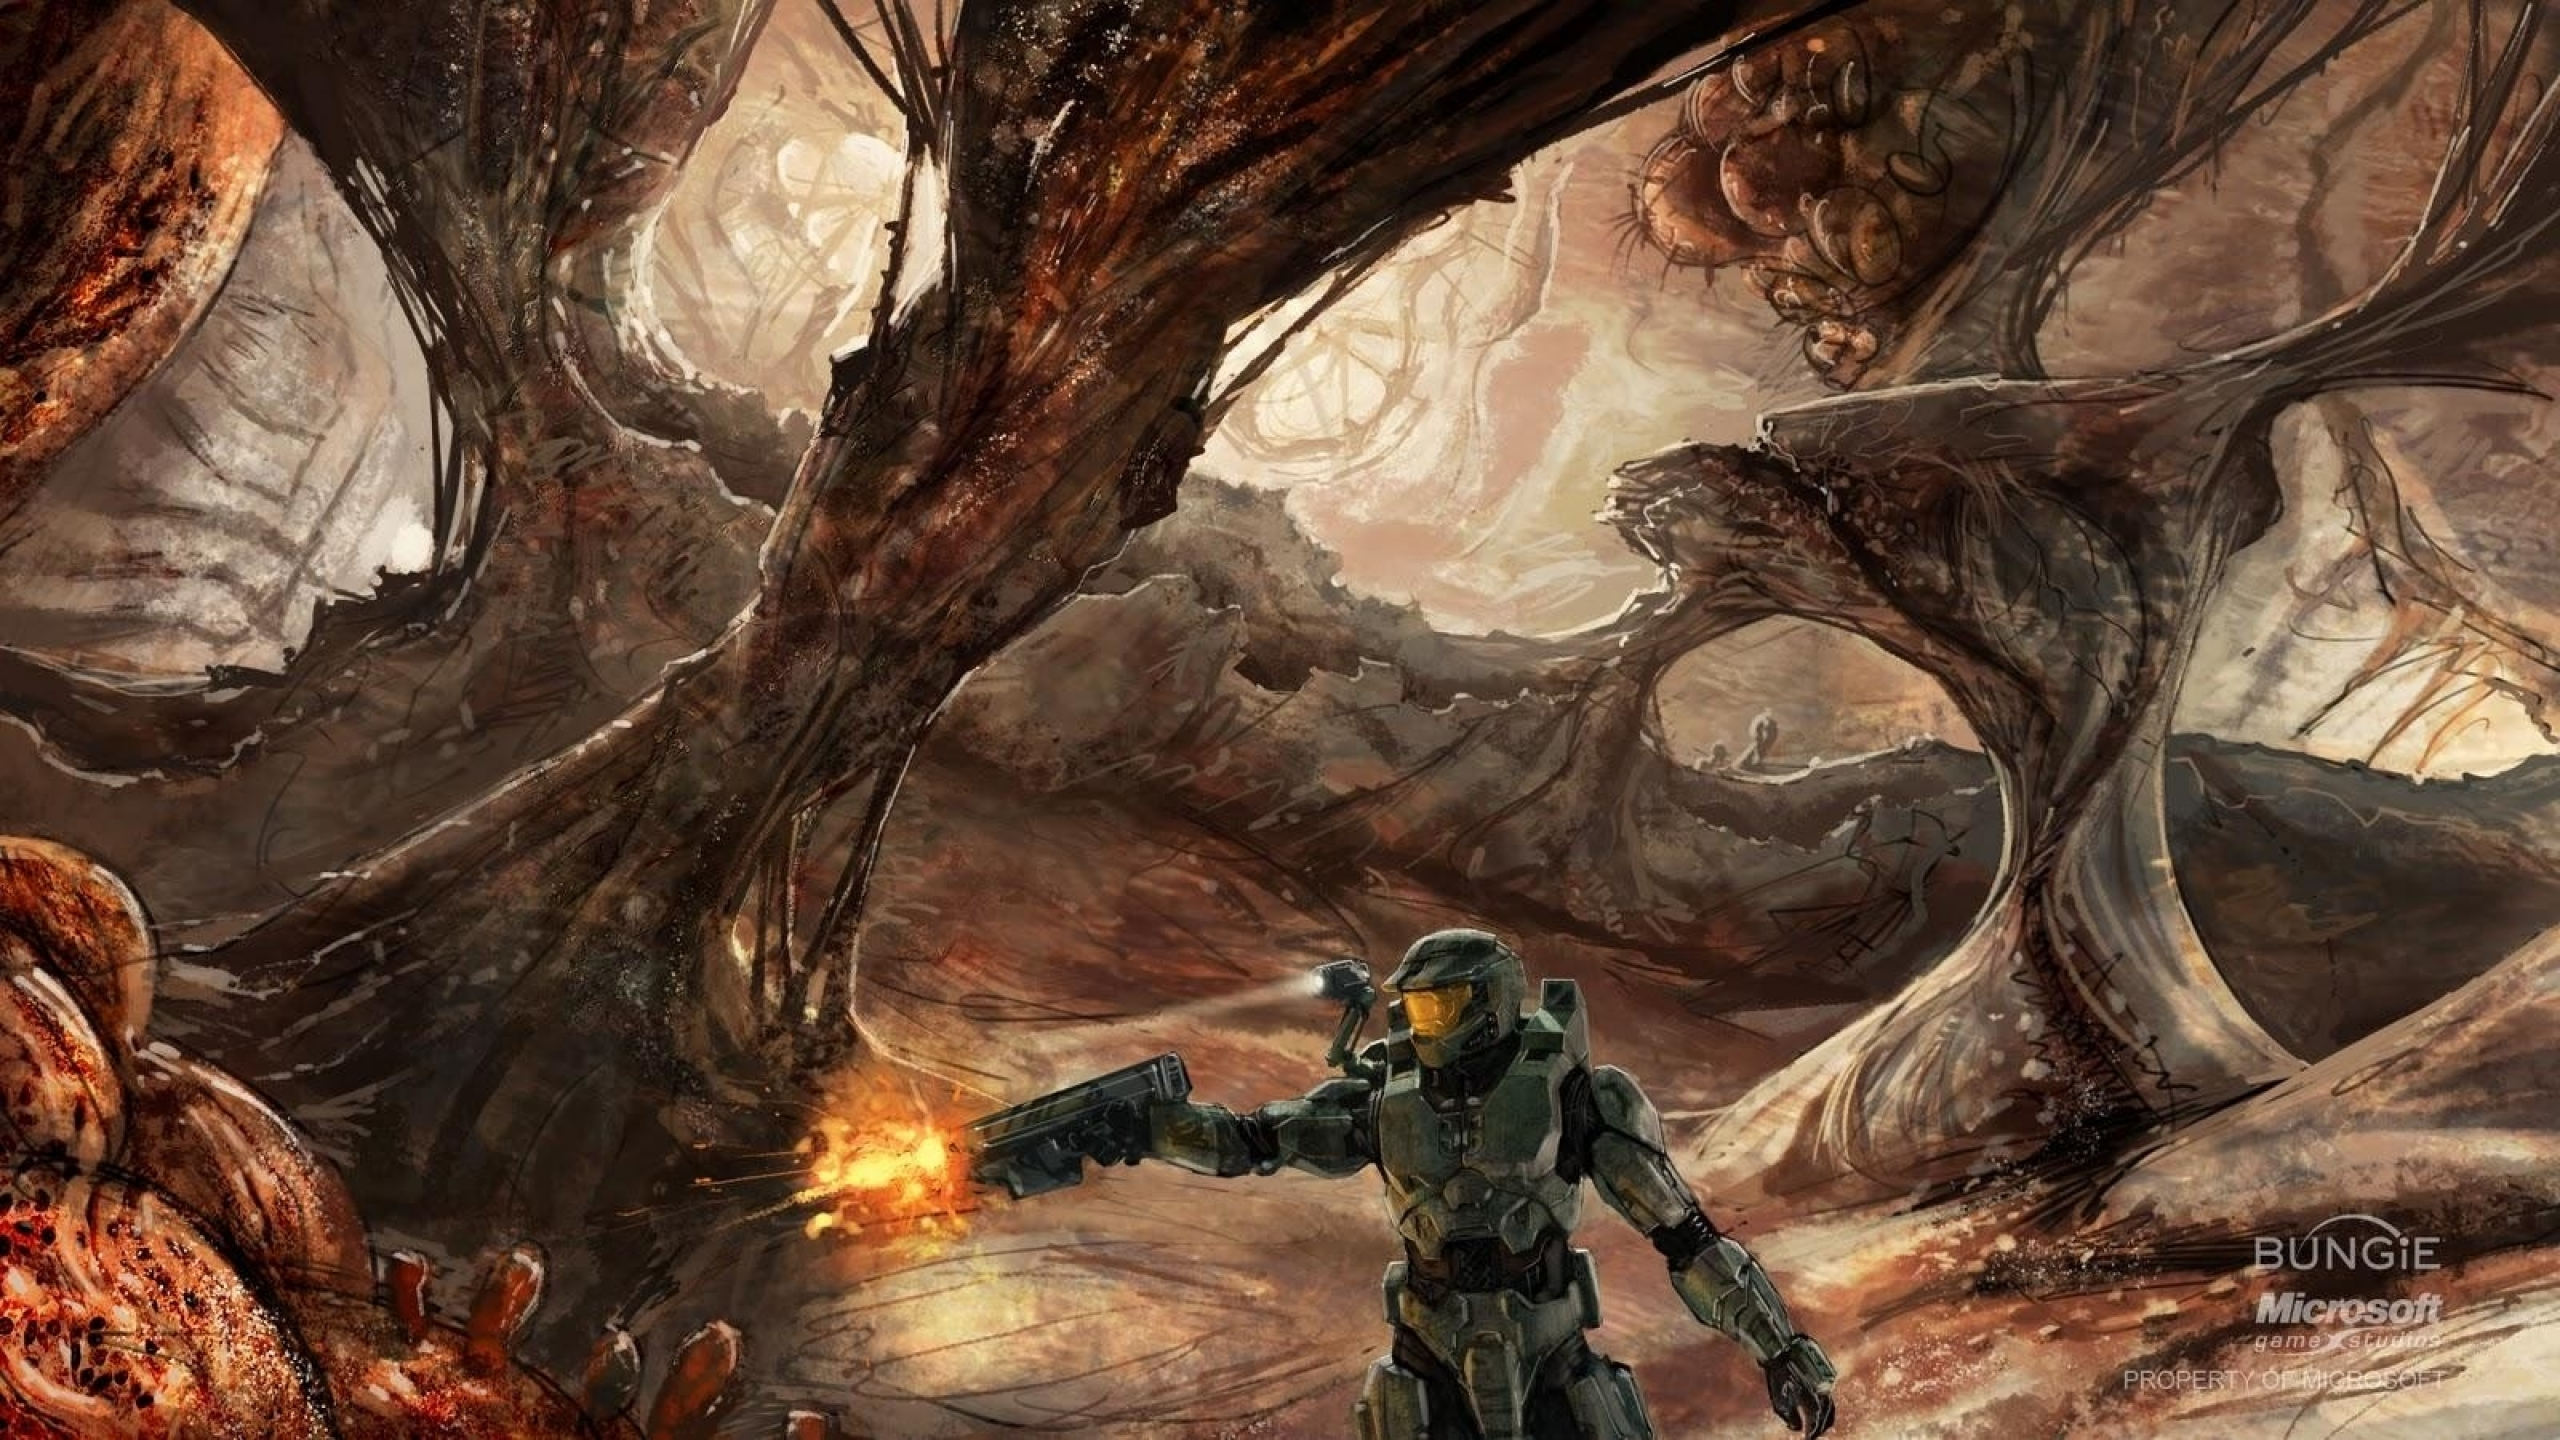 Wallpapers Download 2560x1440 video games halo master chief concept 2560x1440